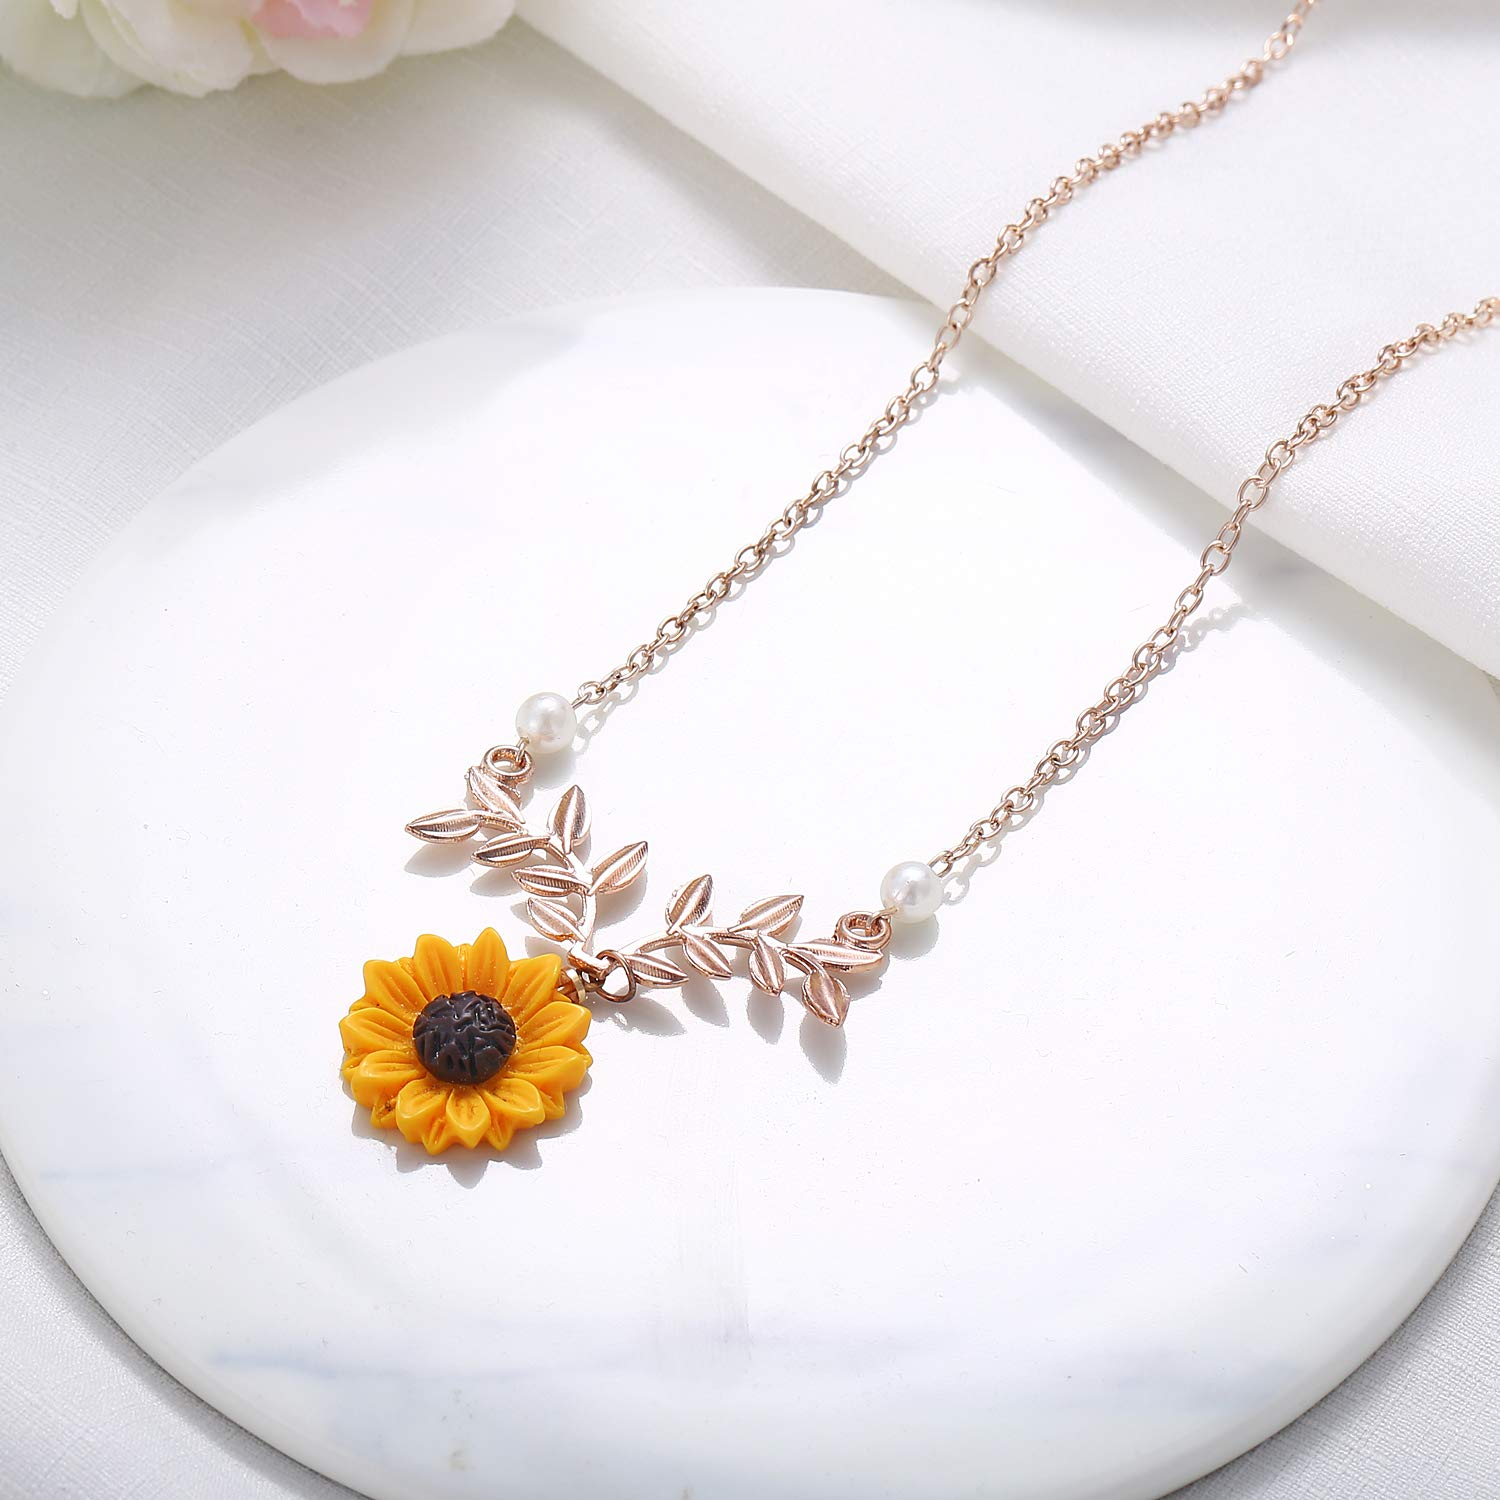 989c8b8453 17mile Sunflower Pearl Leaf Chain Resin Boho Handmade Drop Pendant Choker  Necklace Plated Gold//Rose ...